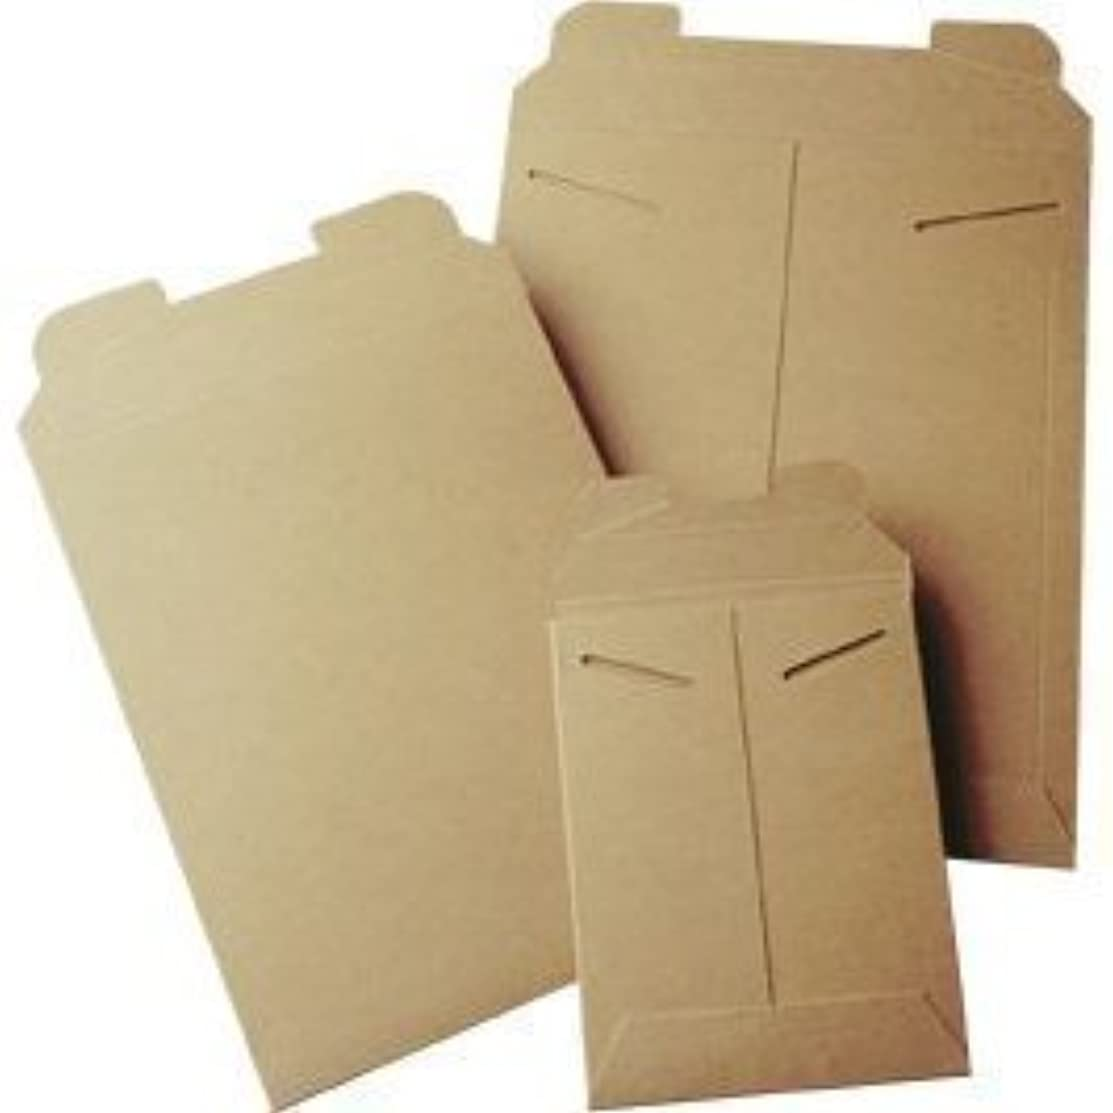 Mailers Direct Kraft Traditional Mailers, 13x18 - 100 Per Box by Mailers Direct